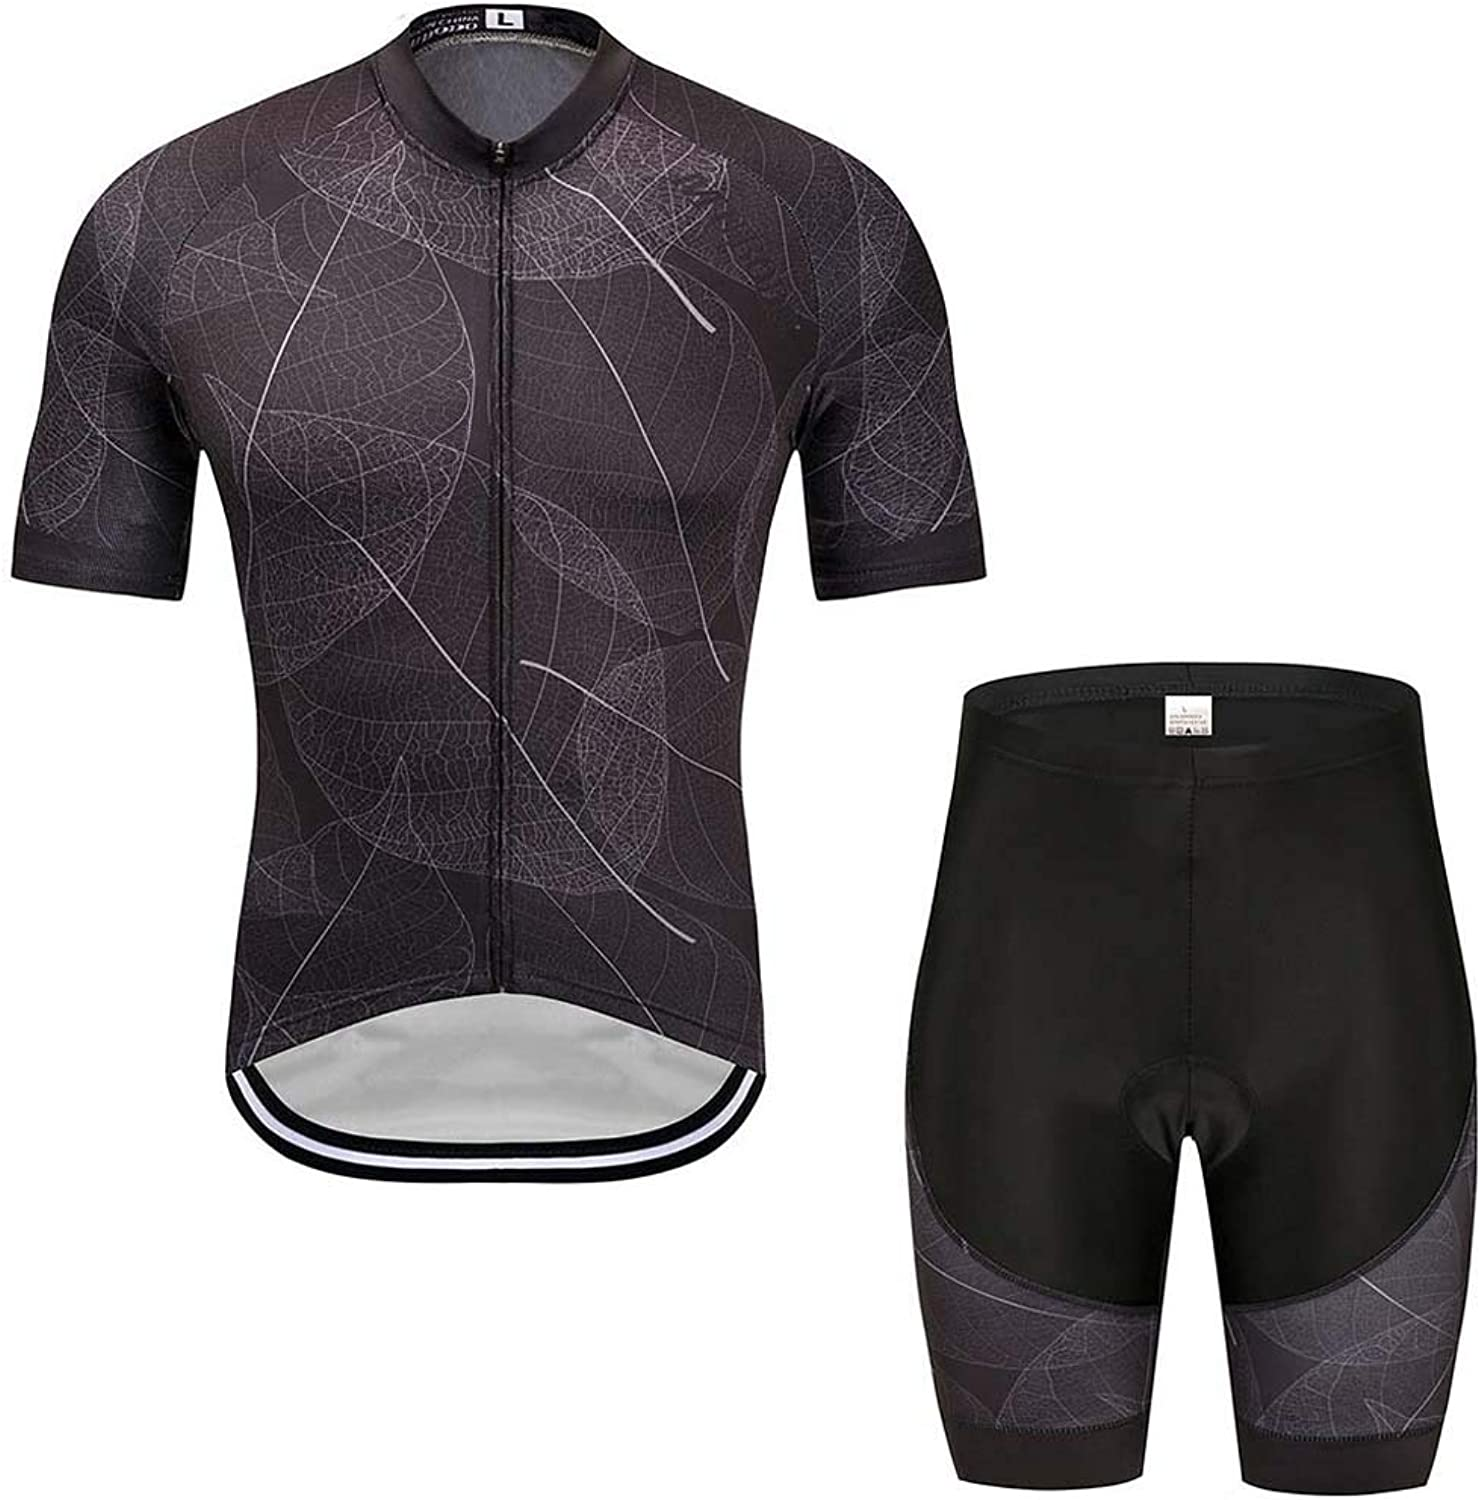 Cycling Jersey, Biker Shorts for Women Men Relaxed Fit Breathable Waterproof Jersey Men, for MTB Road Bicycle Outdoor Sports,XS